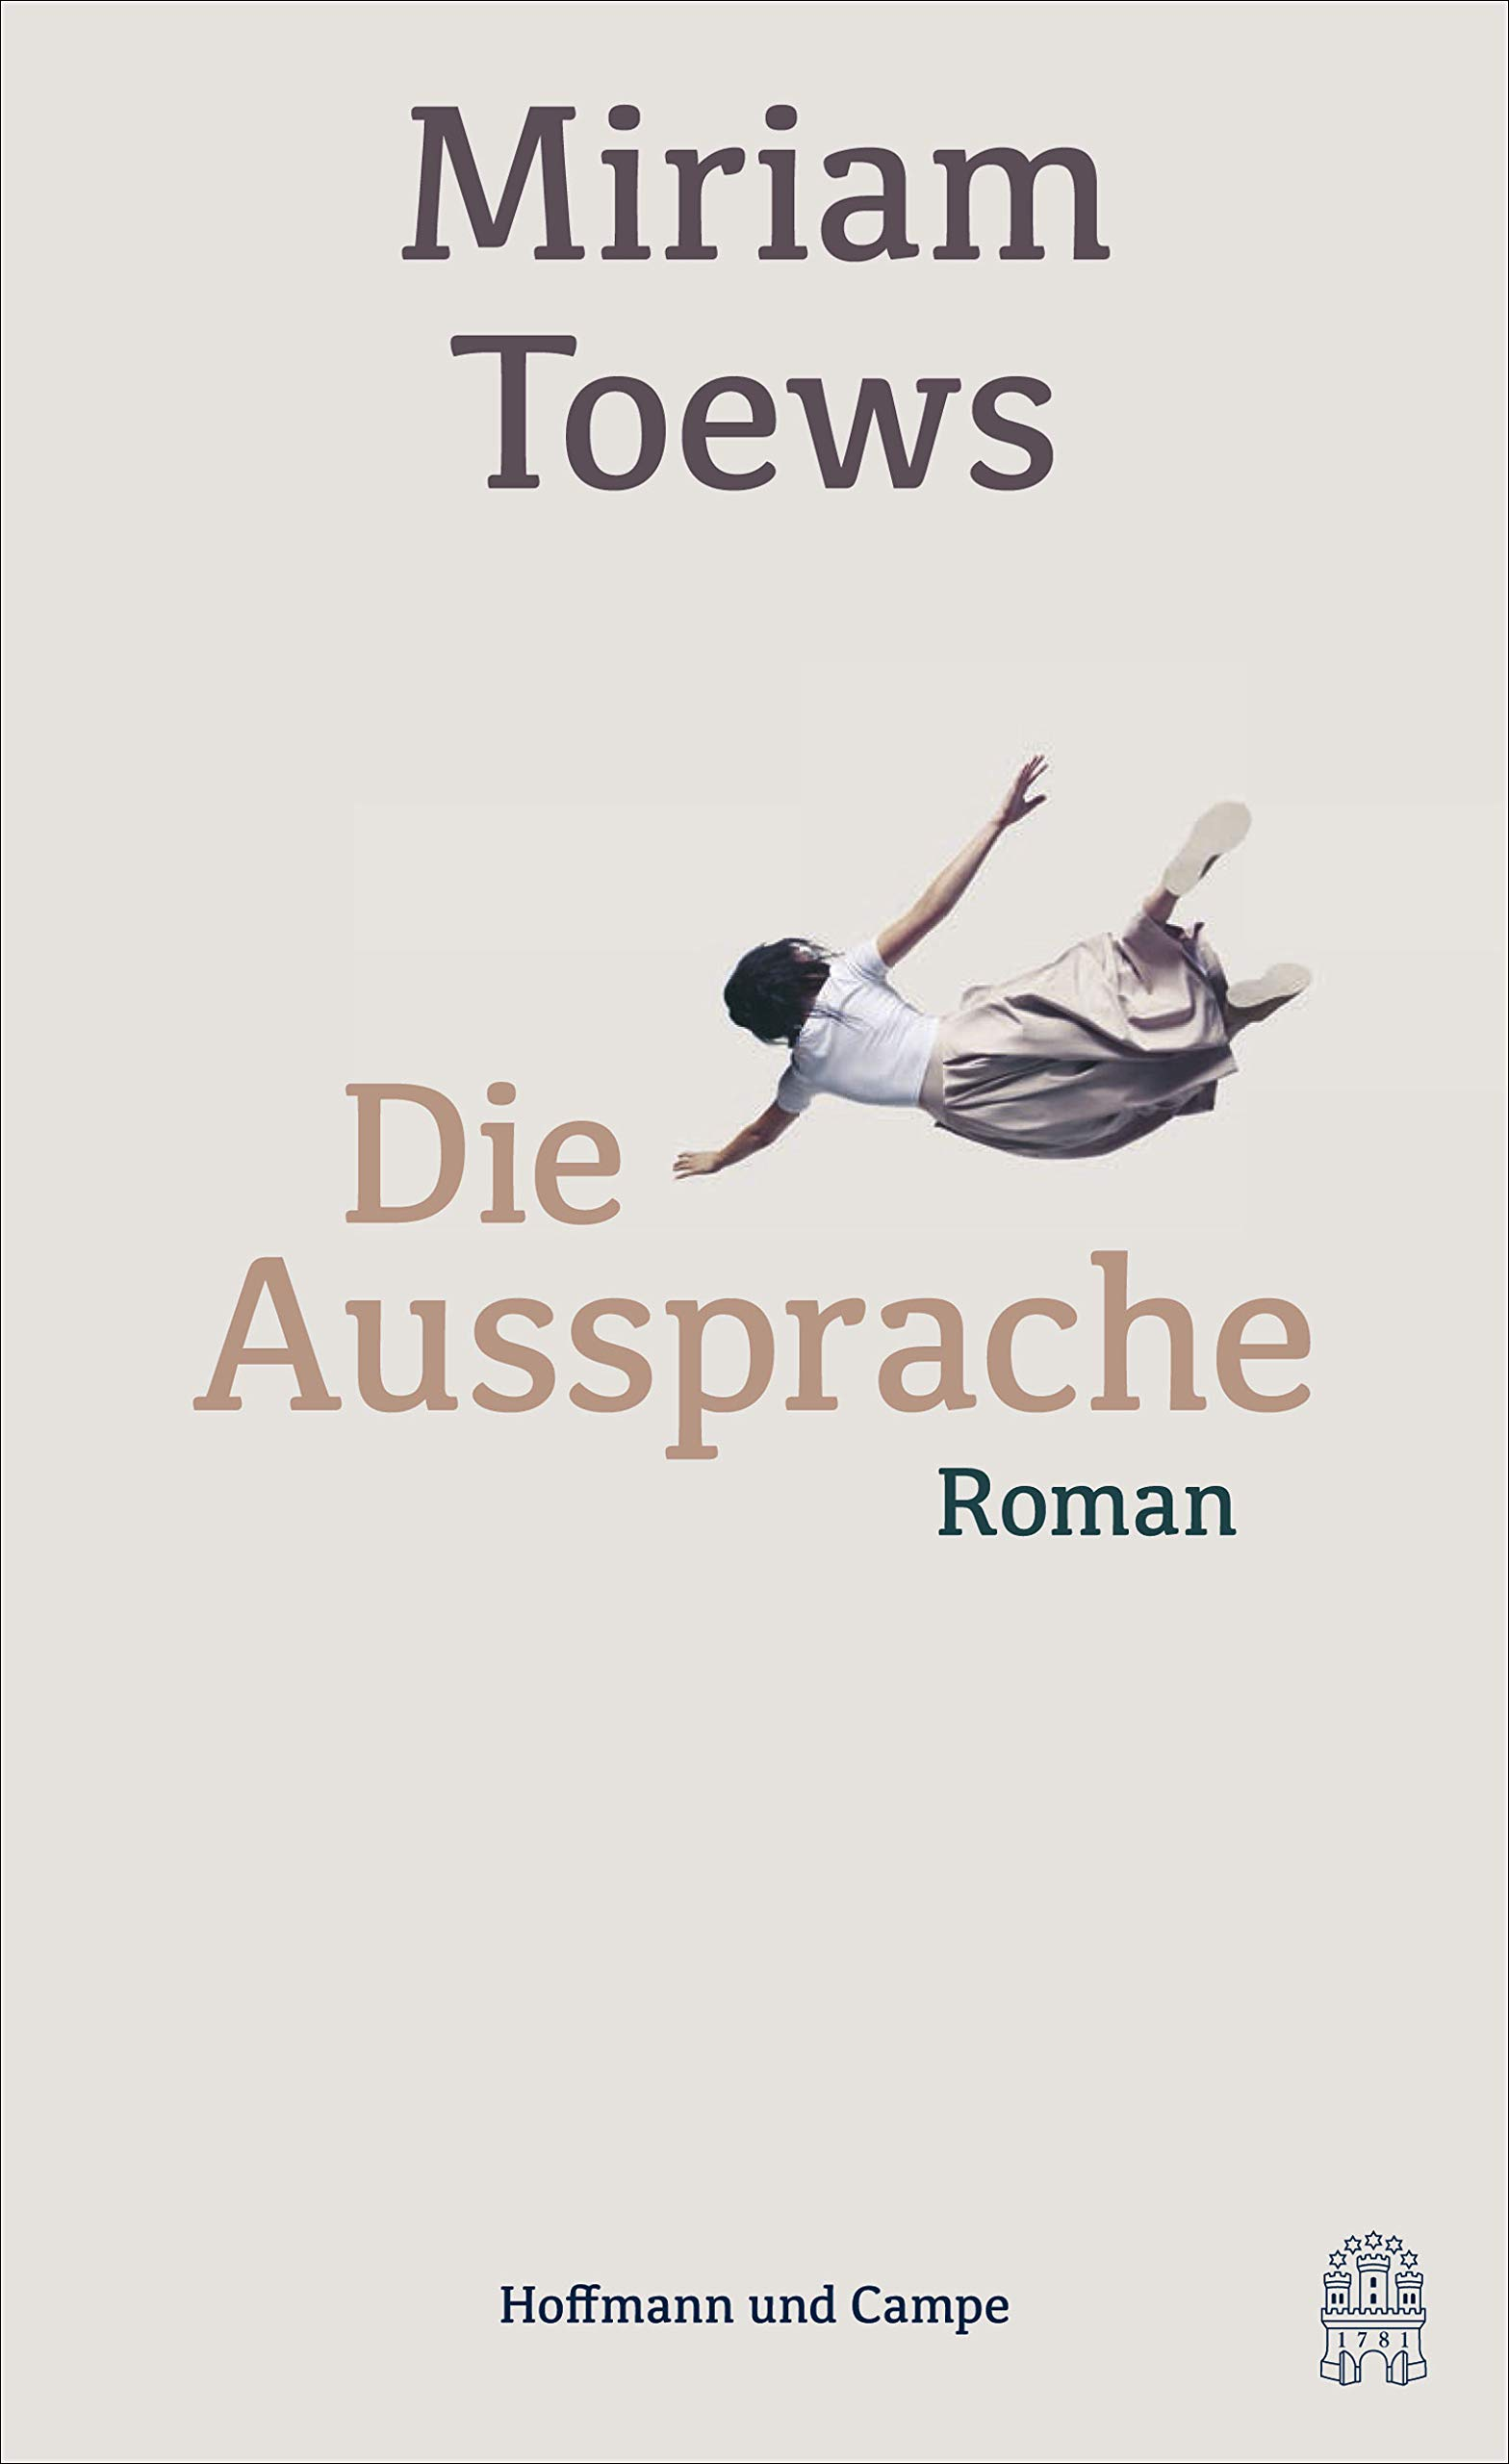 Die Aussprache: Miriam Toews: 9783455005097: Amazon.com: Books